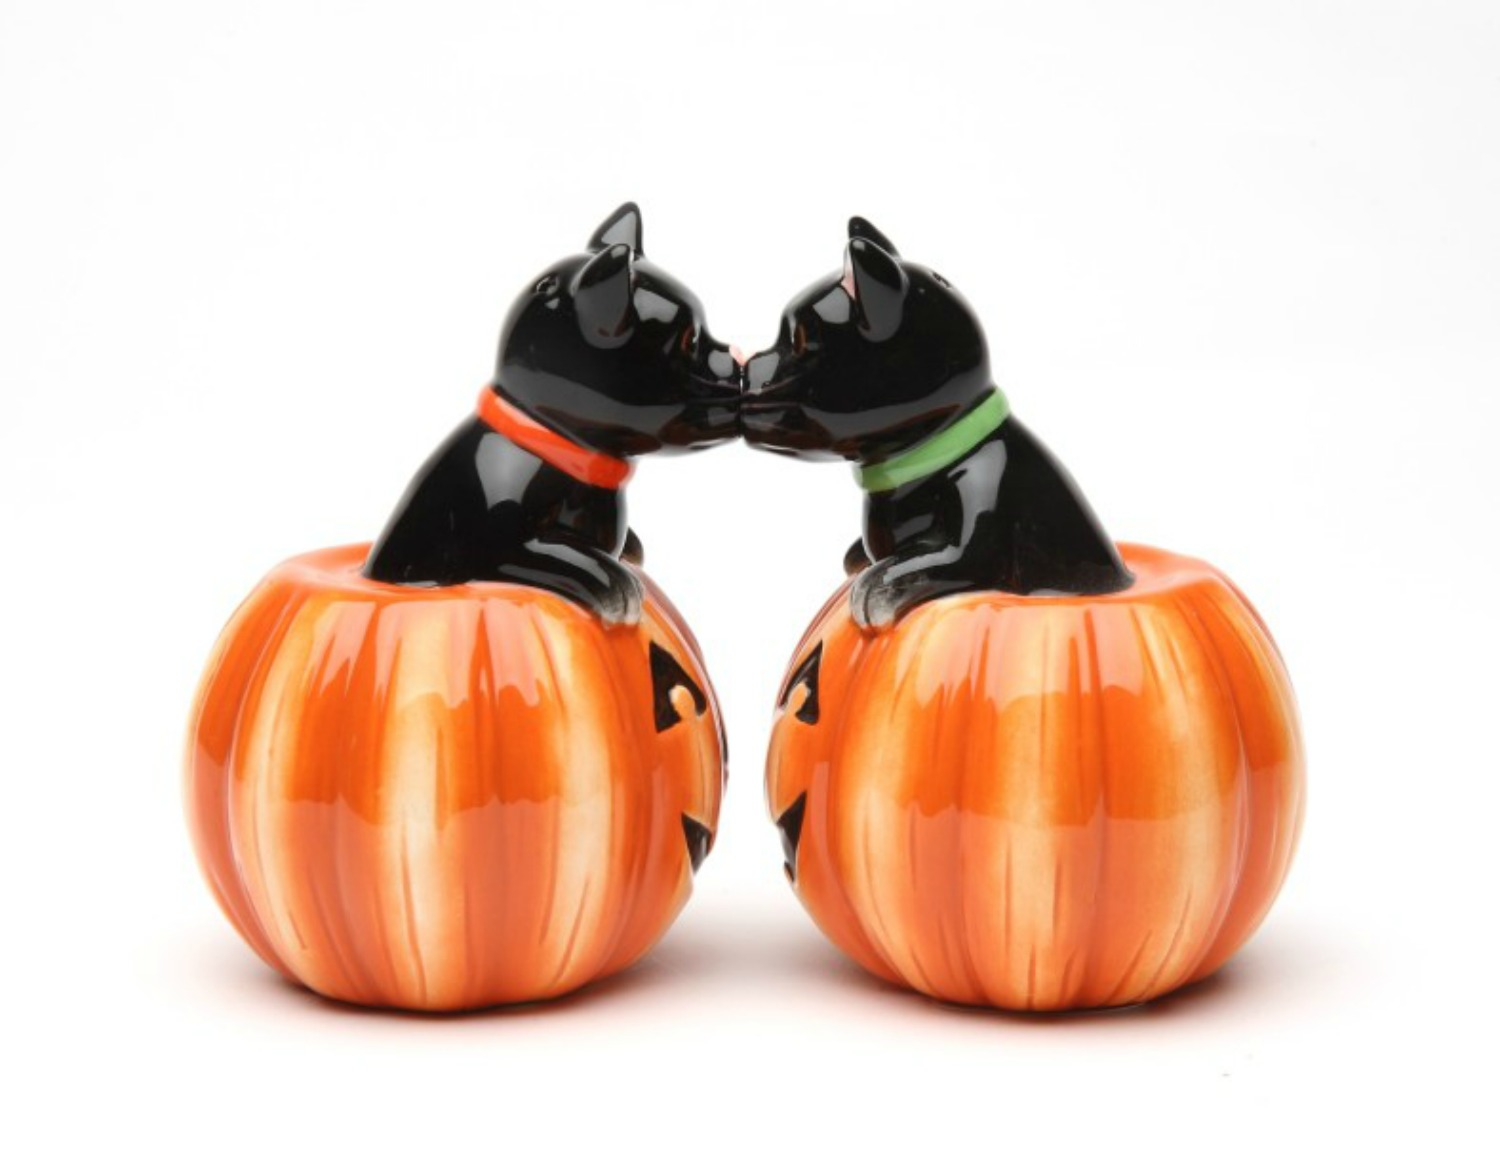 Click here to buy Black Cat and Halloween Pumpkins Salt and Pepper Shaker Set by Pacific Trading.